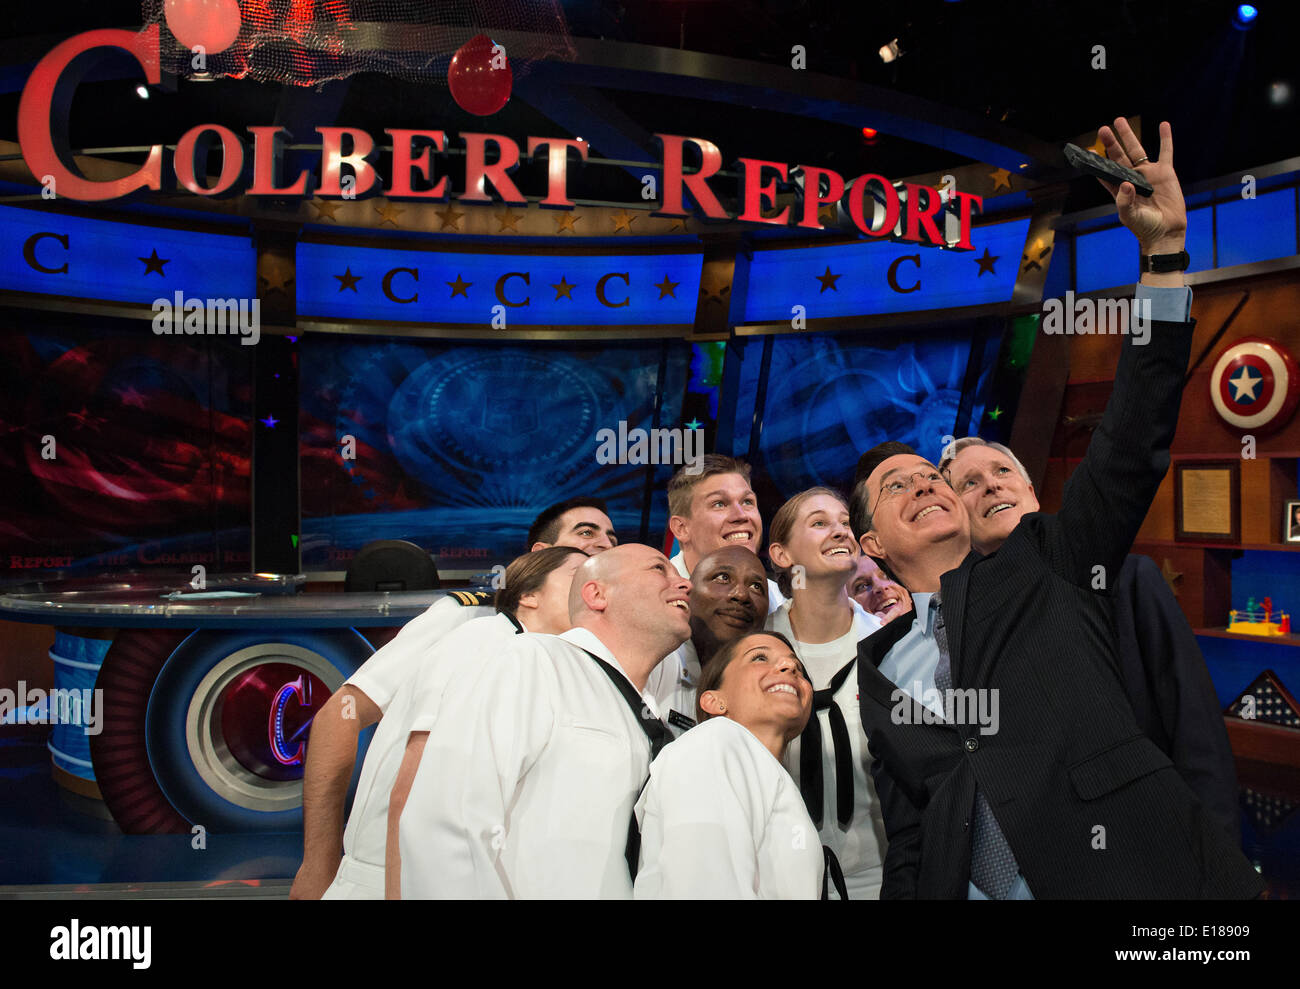 Comedian Stephen Colbert takes a selfie with Secretary of the Navy Ray Mabus and Sailors during Fleet Week 2014 May 22, 2014 in New York City. - Stock Image